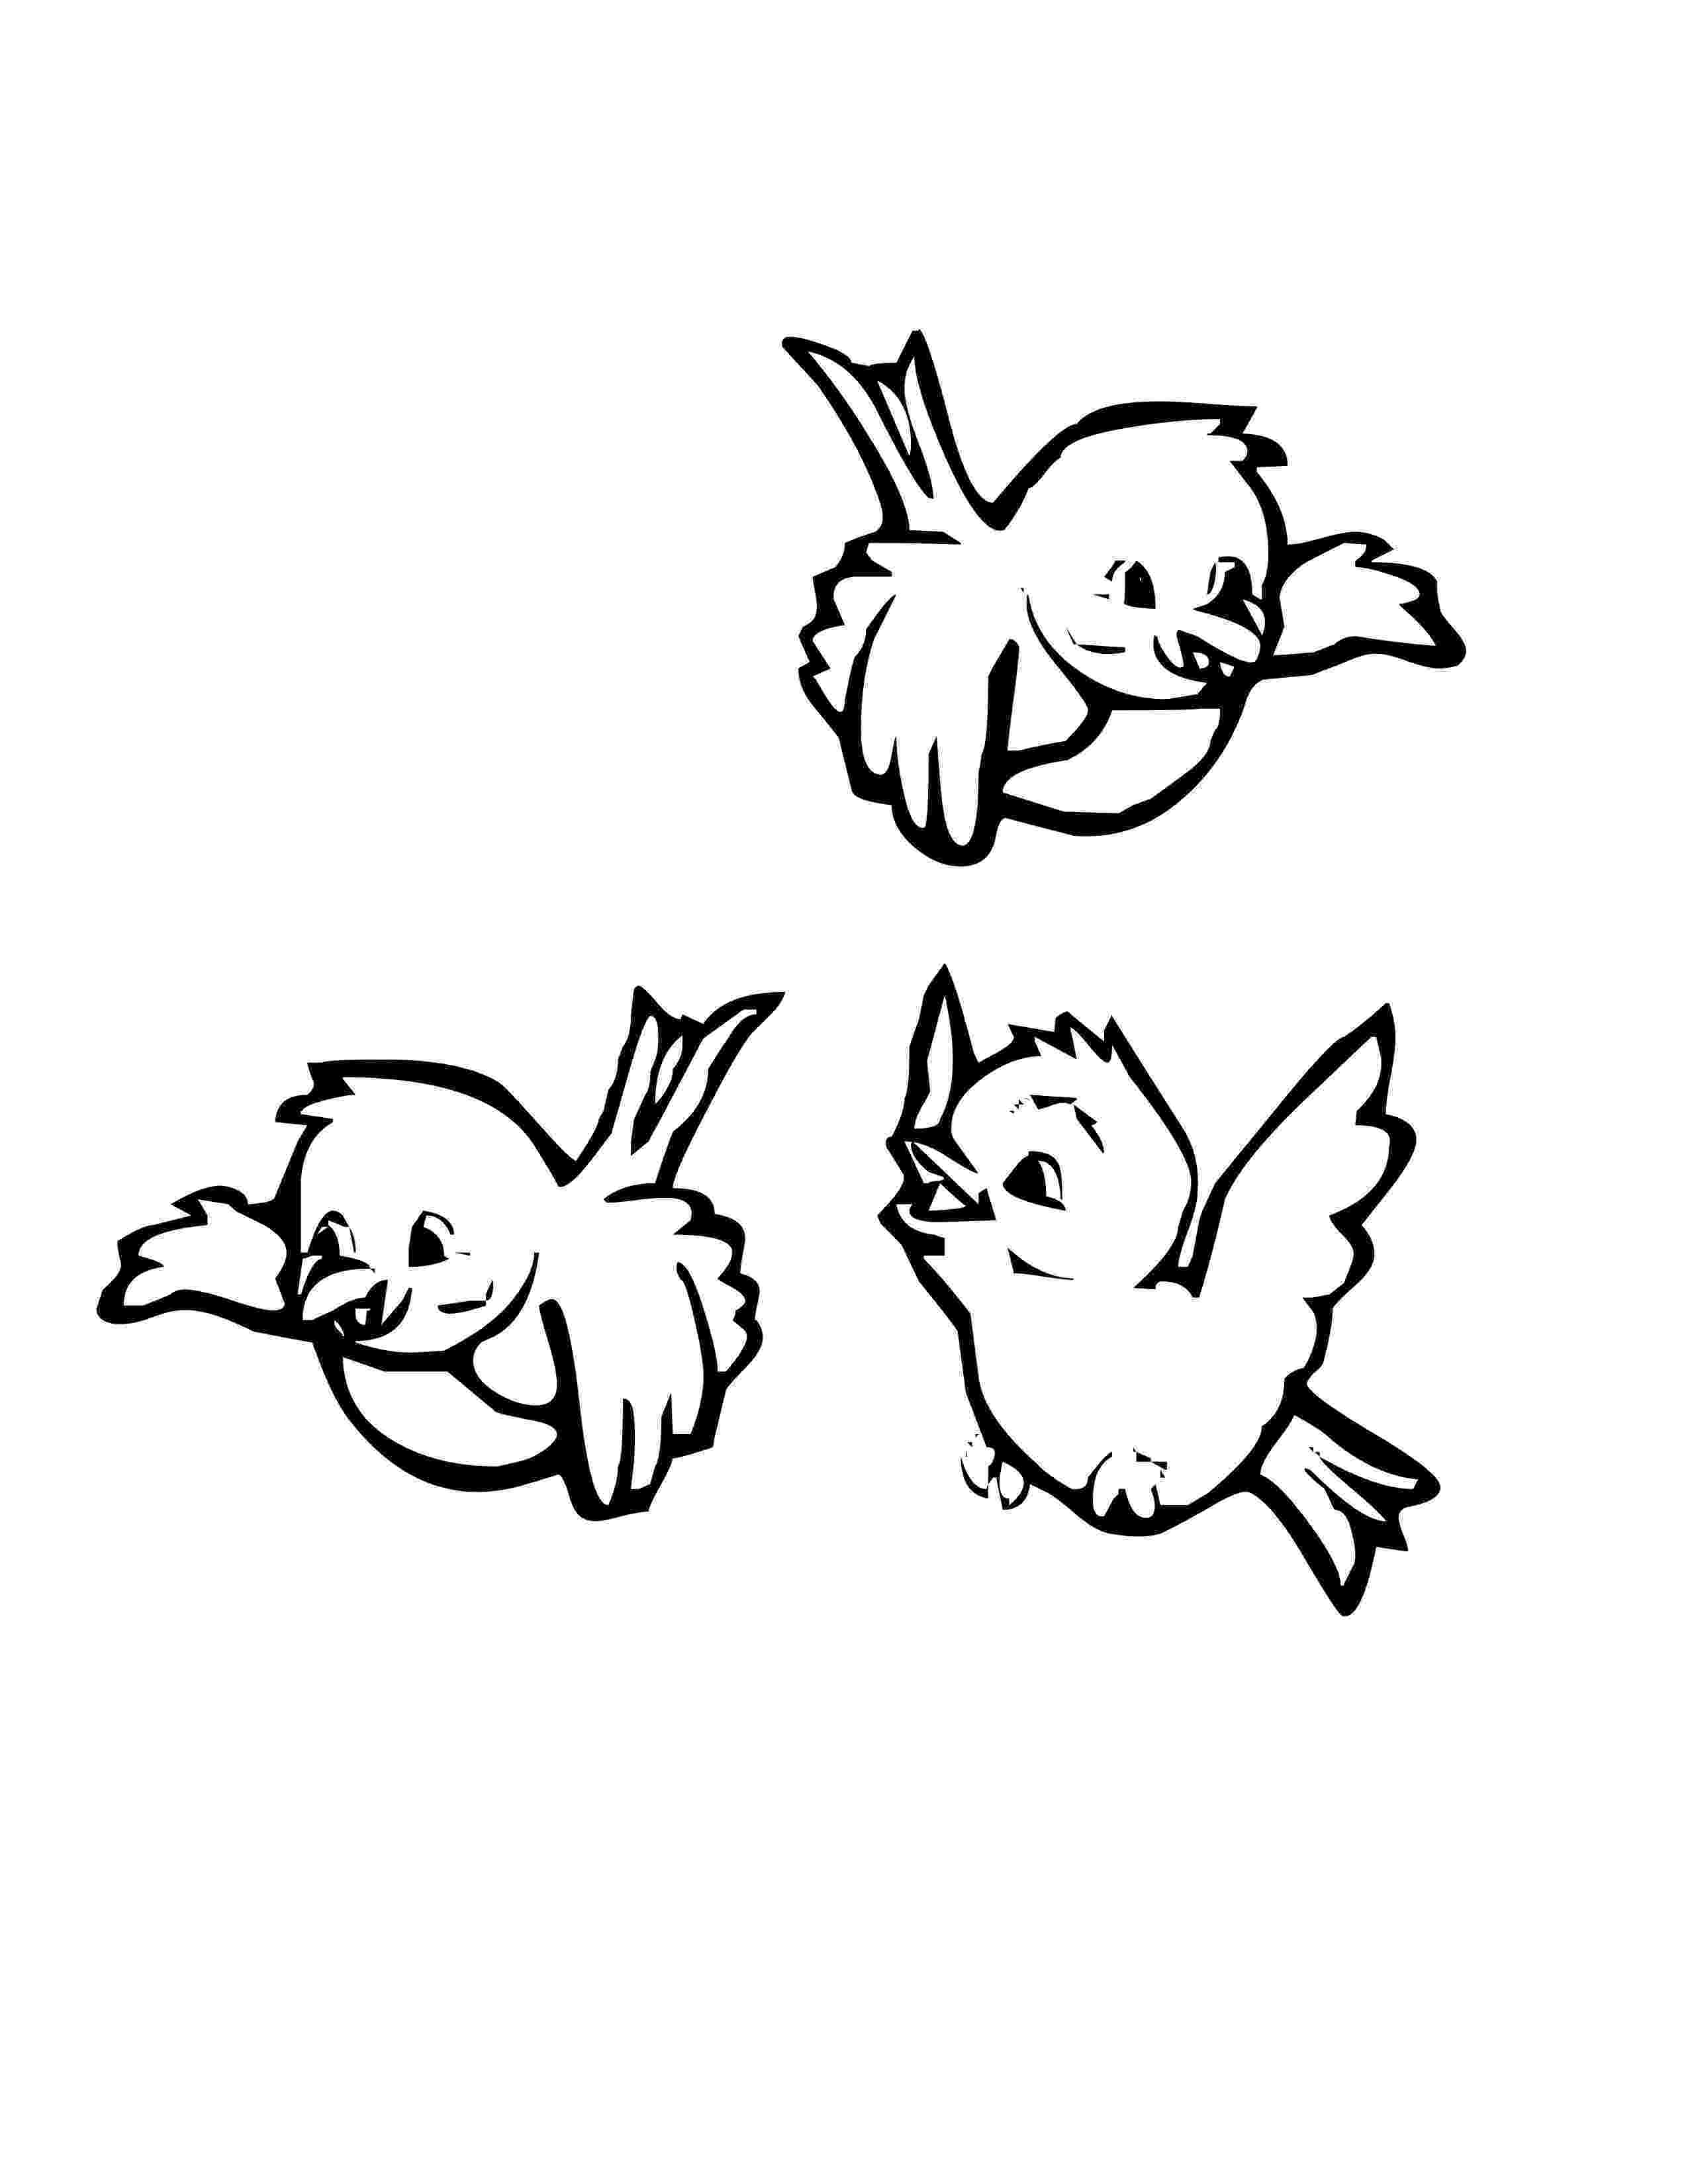 colouring picture bird bird coloring pages bird picture colouring